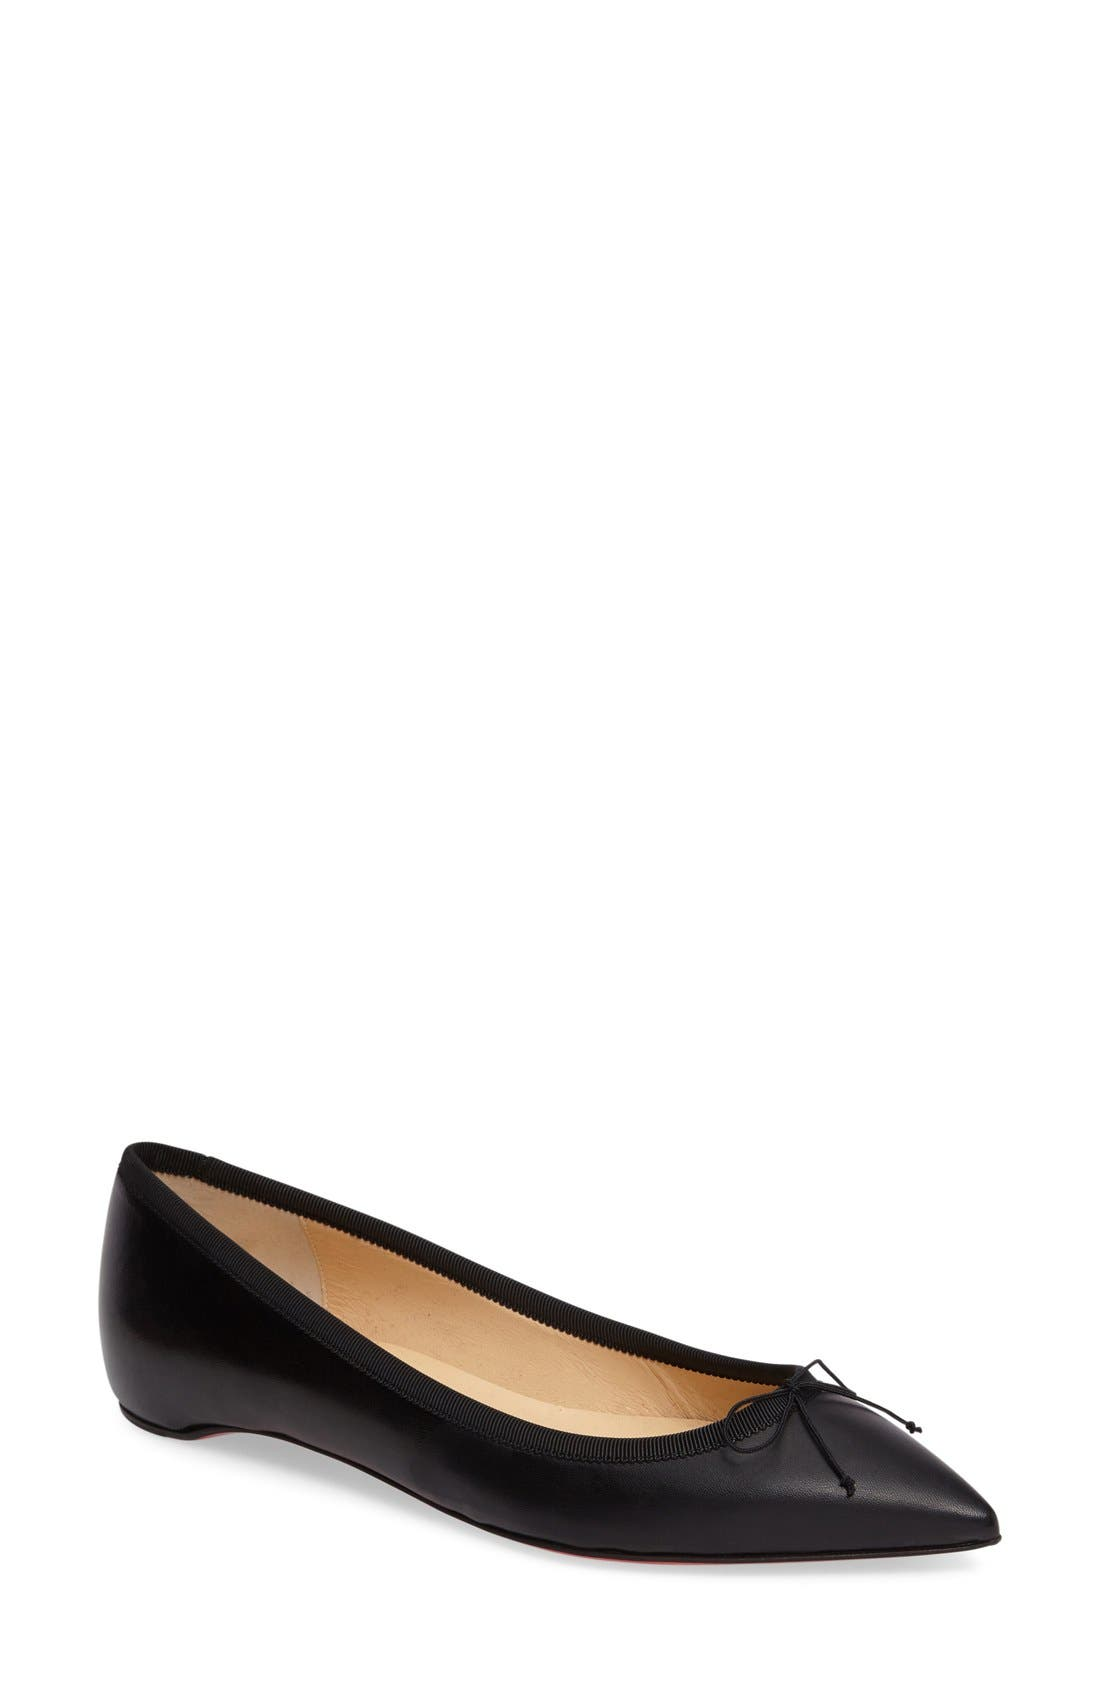 Solasofia Pointy Toe Flat,                             Main thumbnail 1, color,                             Black Leather